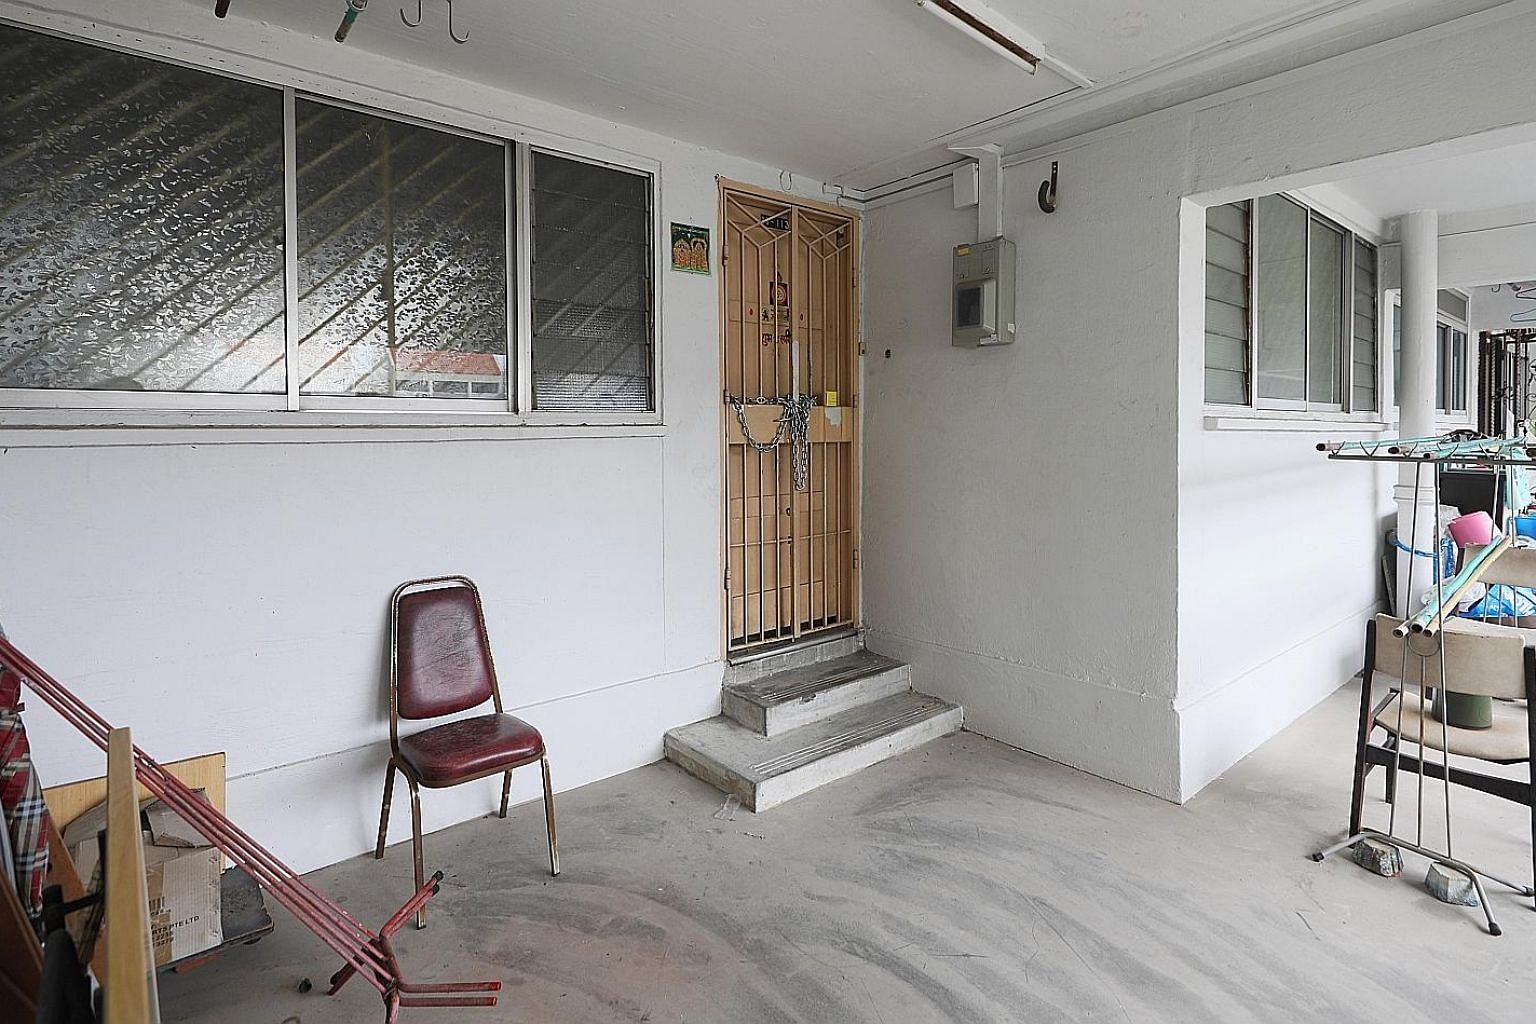 The police found the body of a man's mother in their flat (above) after he was found dead at the foot of their Housing Board block in Little India, where bloodstains (left) can be seen.